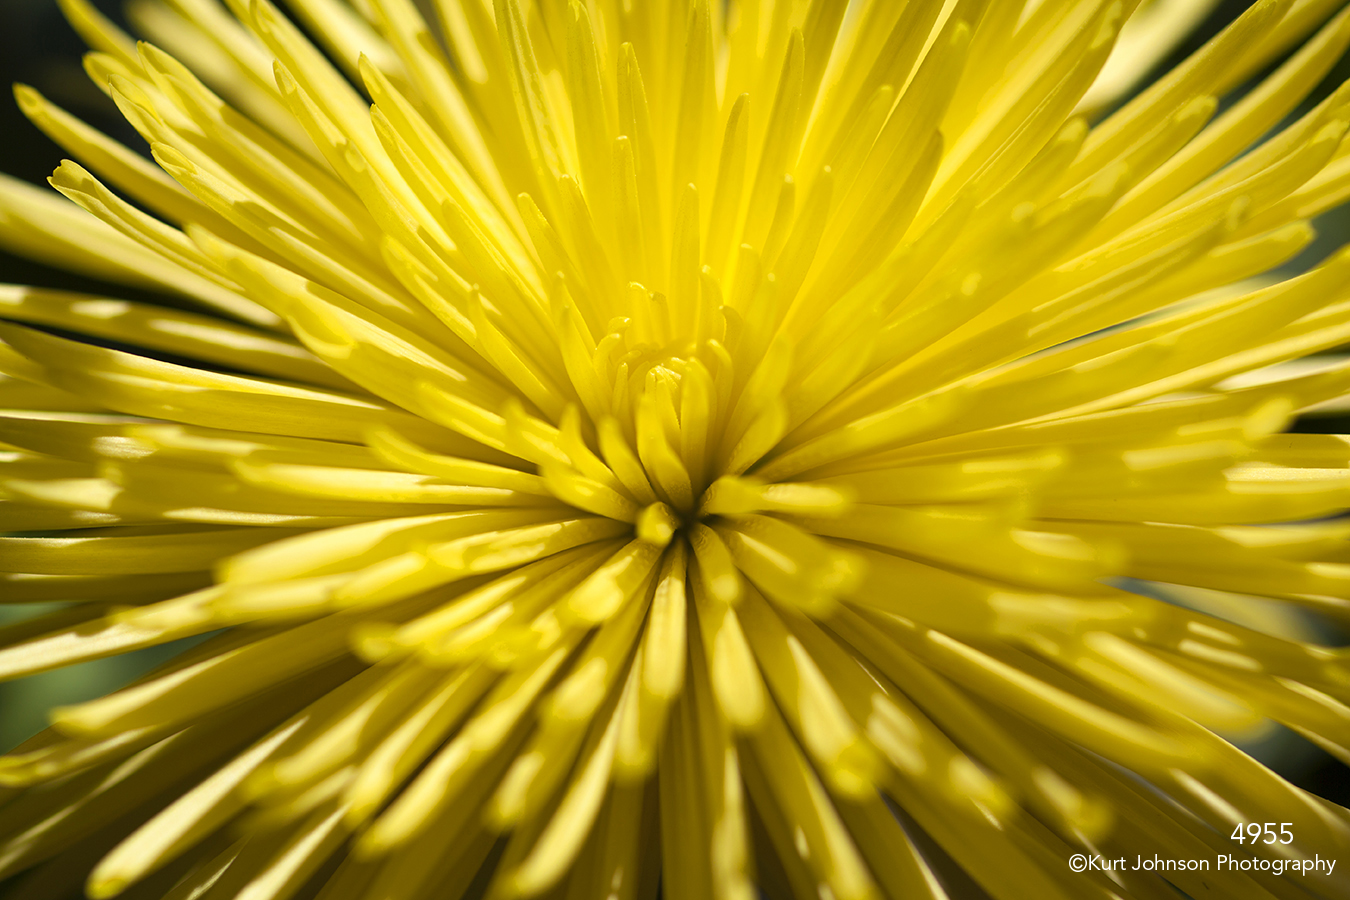 flower yellow petals texture close up details spider mum